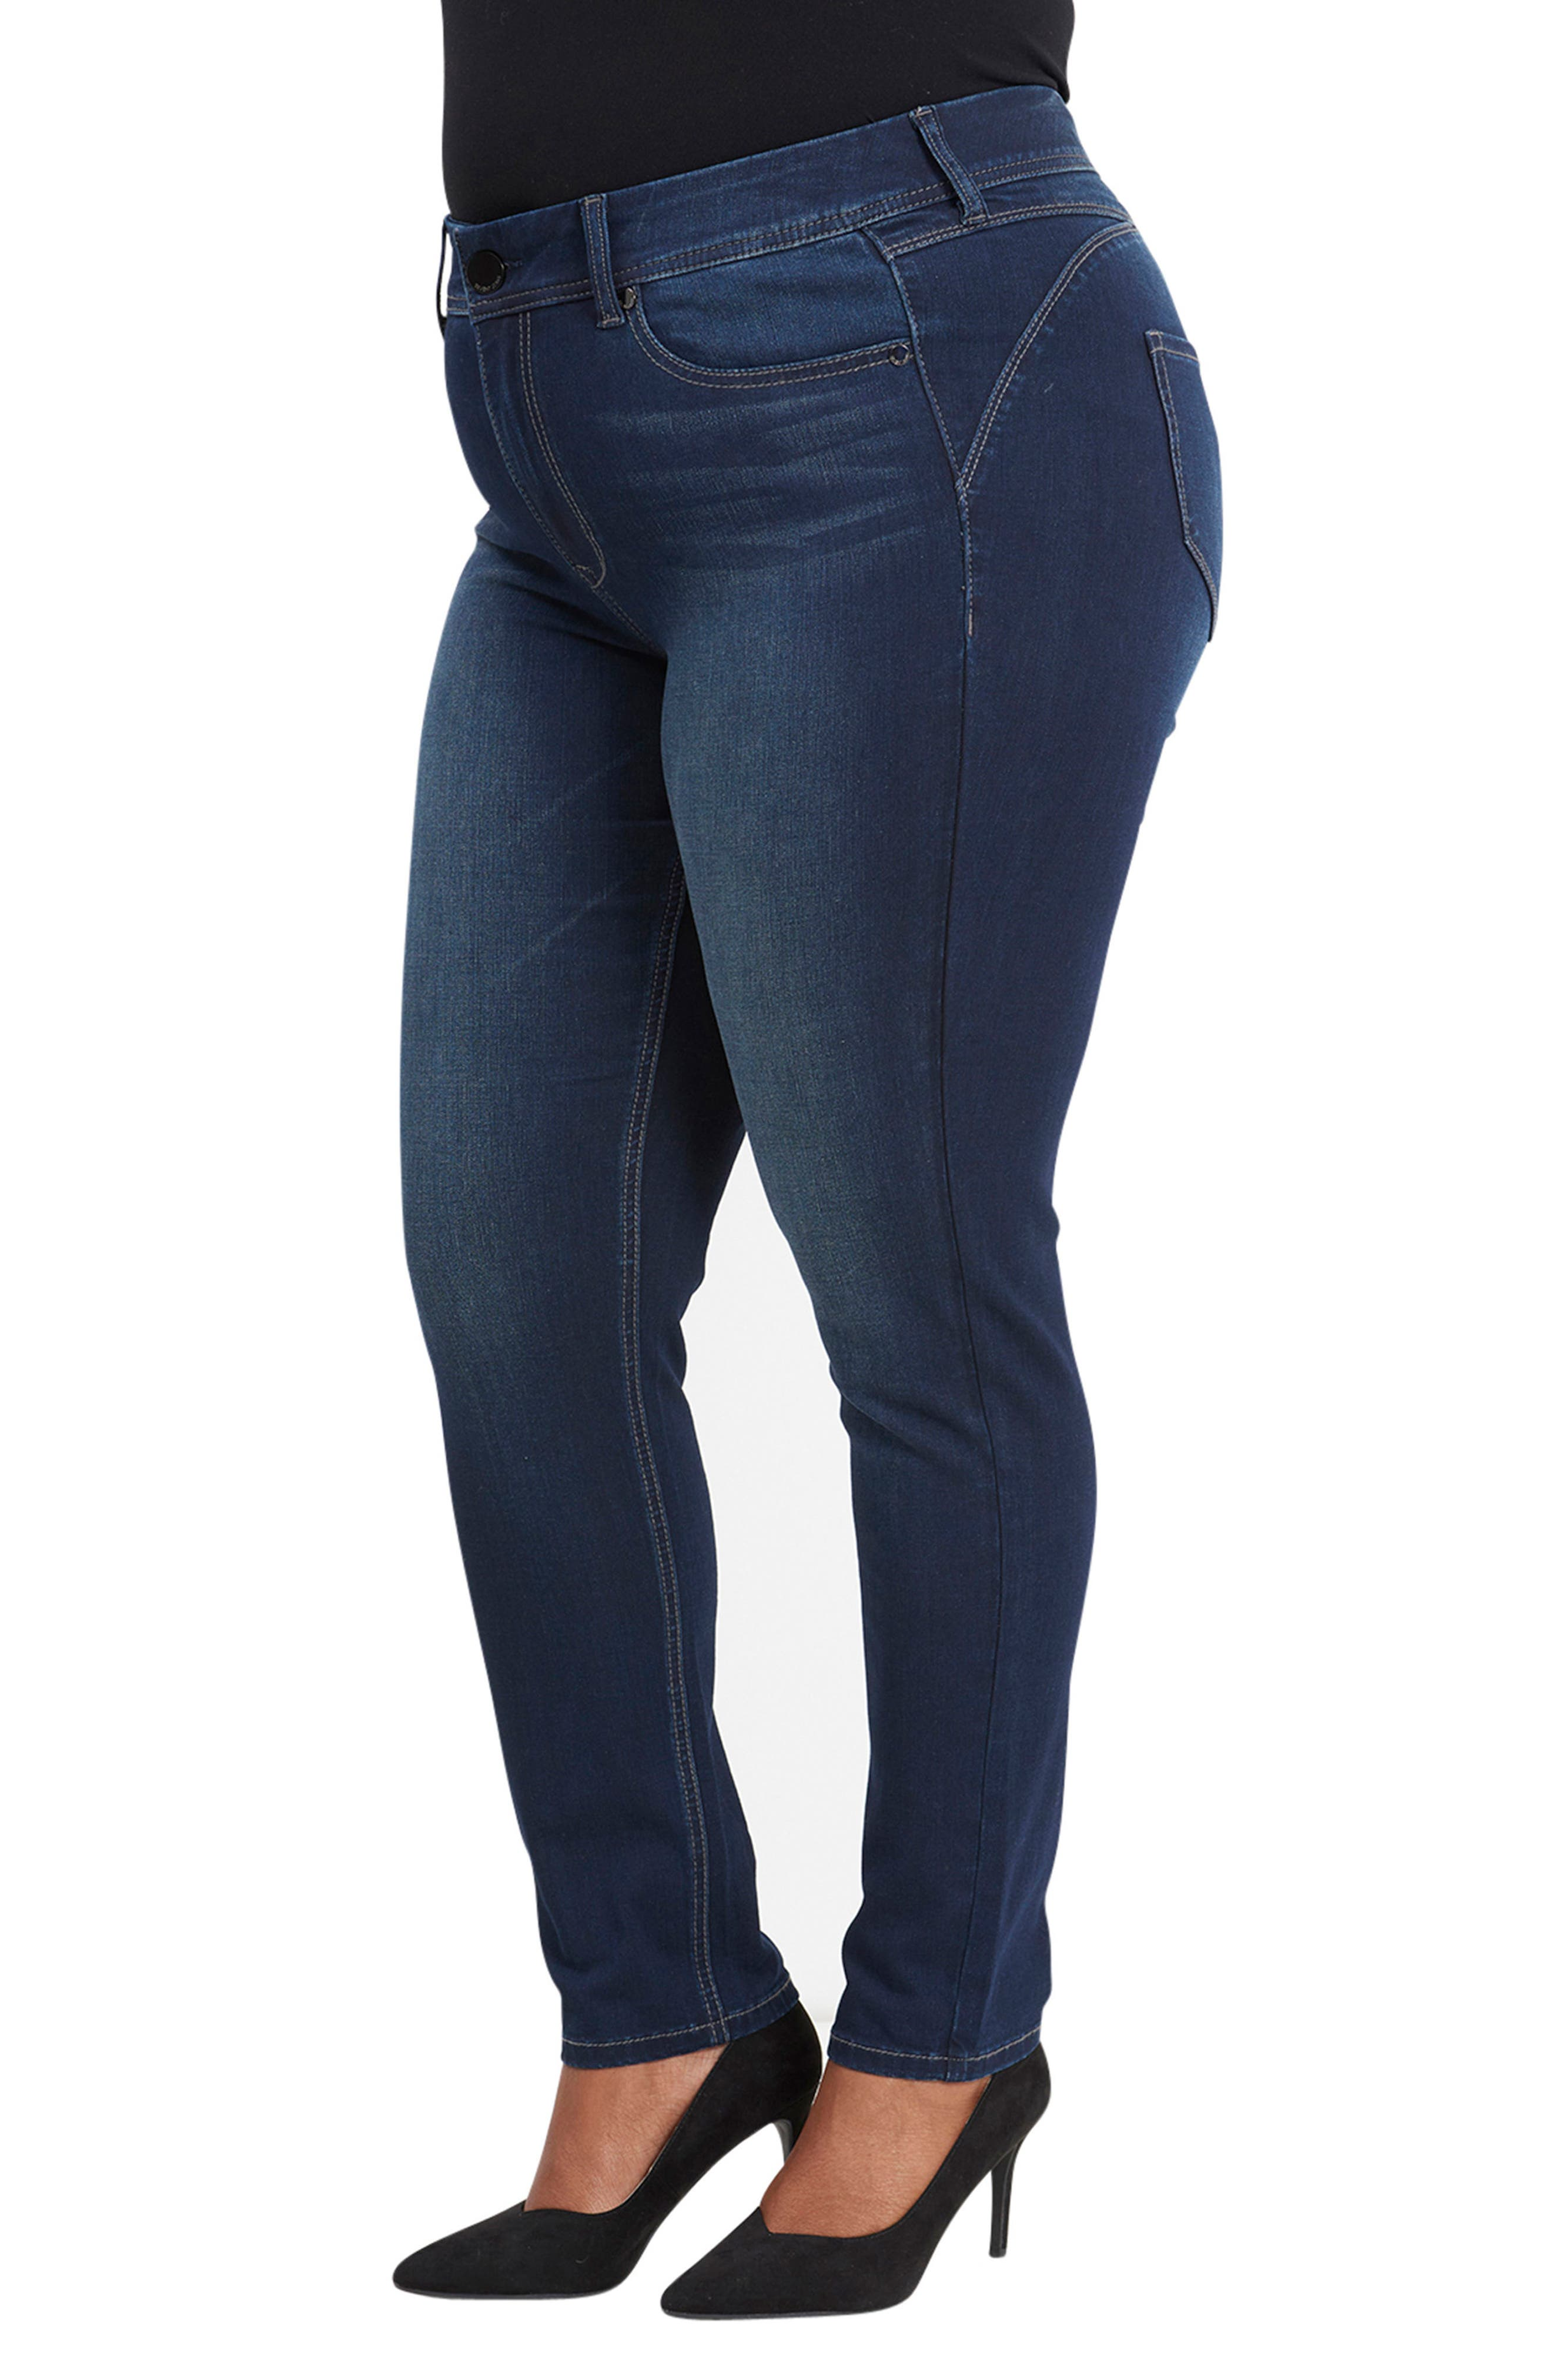 Bootyshaper Skinny Jeans,                             Alternate thumbnail 3, color,                             BLUE